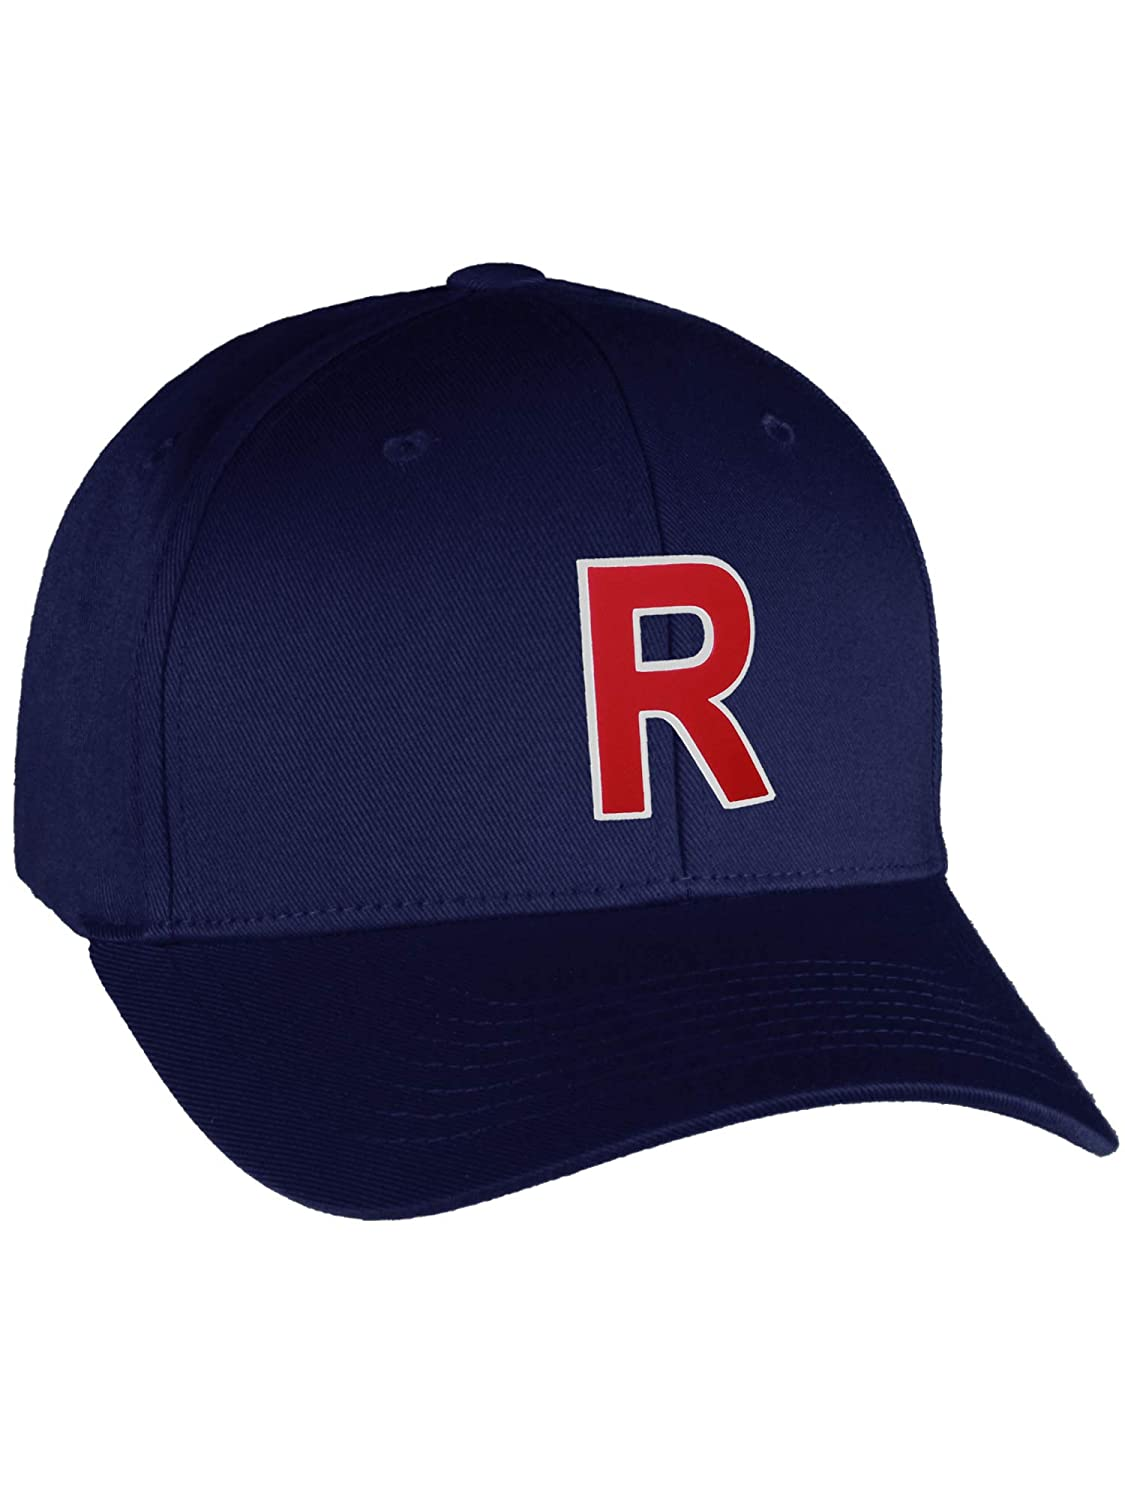 Flexfit Baseball Hat Custom Letter Initials A to Z Curved Bill Navy Cap Wh Red